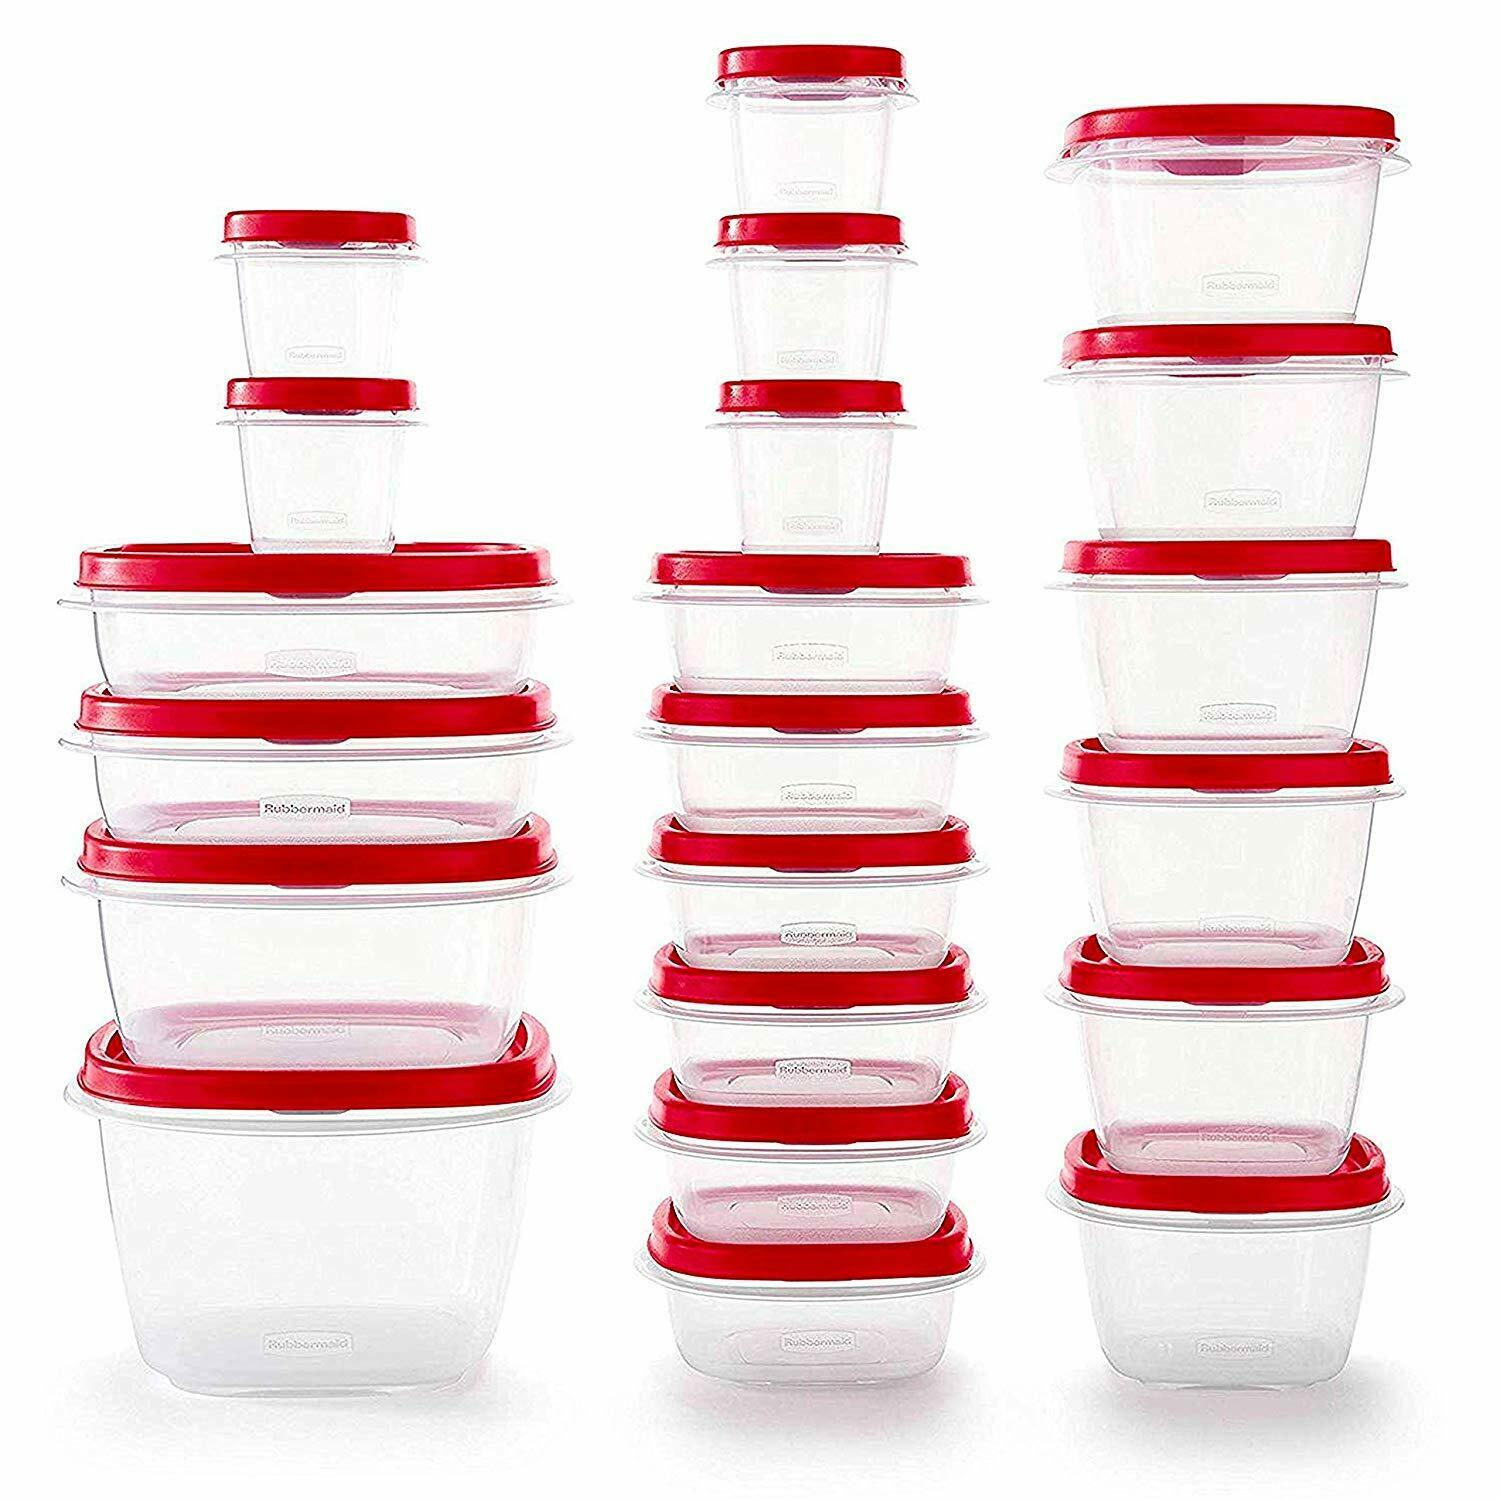 Rubbermaid 2063704 Easy Find Vented Lids Food Storage Container, 42pc New 1